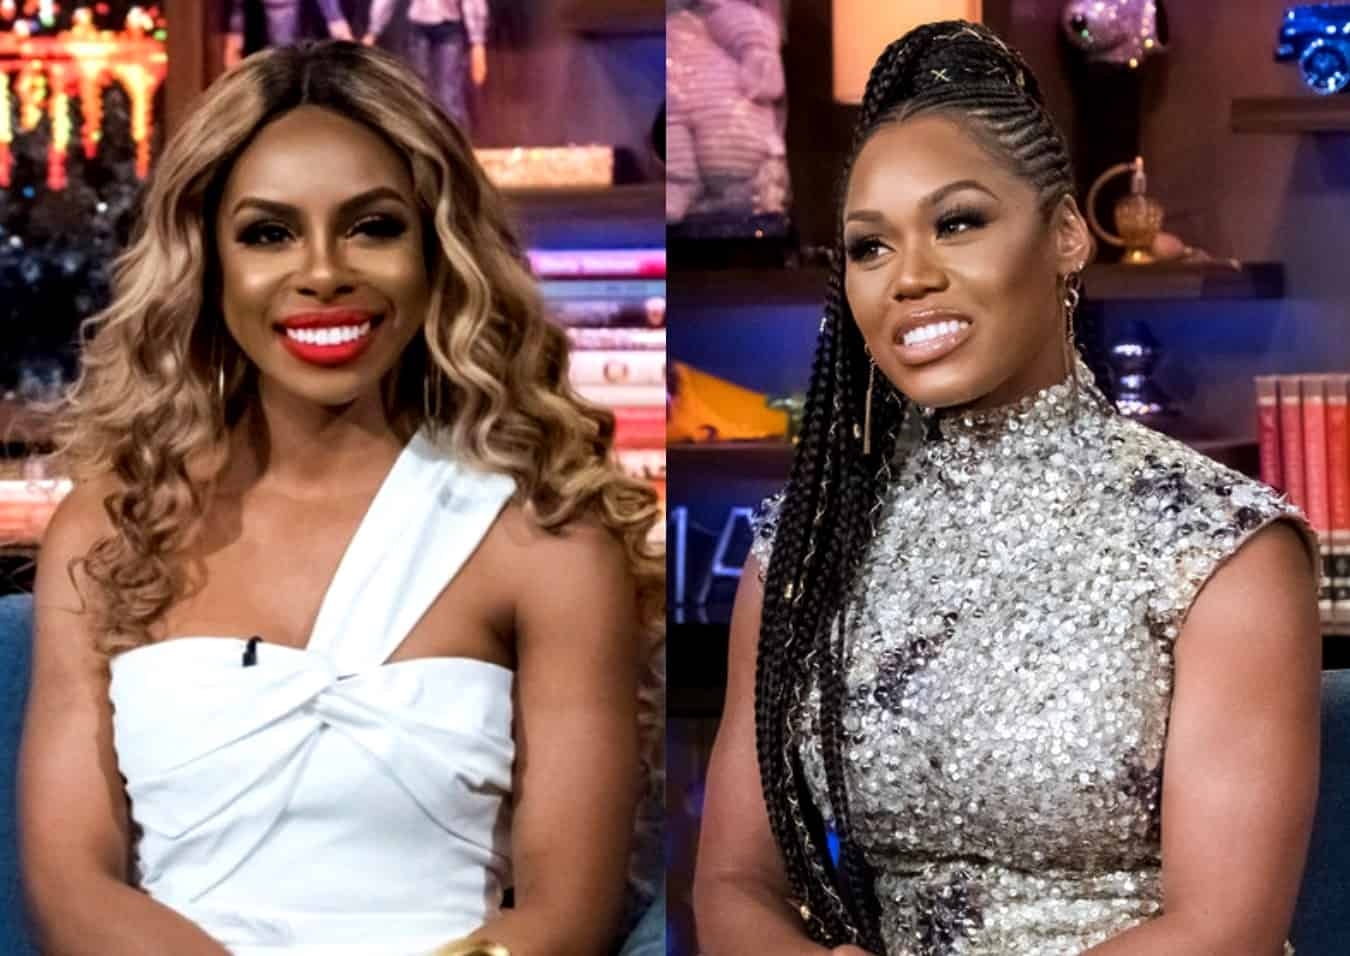 Candiace Dillard-Bassett Seemingly Shades Monique Samuels With a Snarky Tweet After She Claimed Bravo Banned Her From Doing Press Interviews Since Her Exit From RHOP